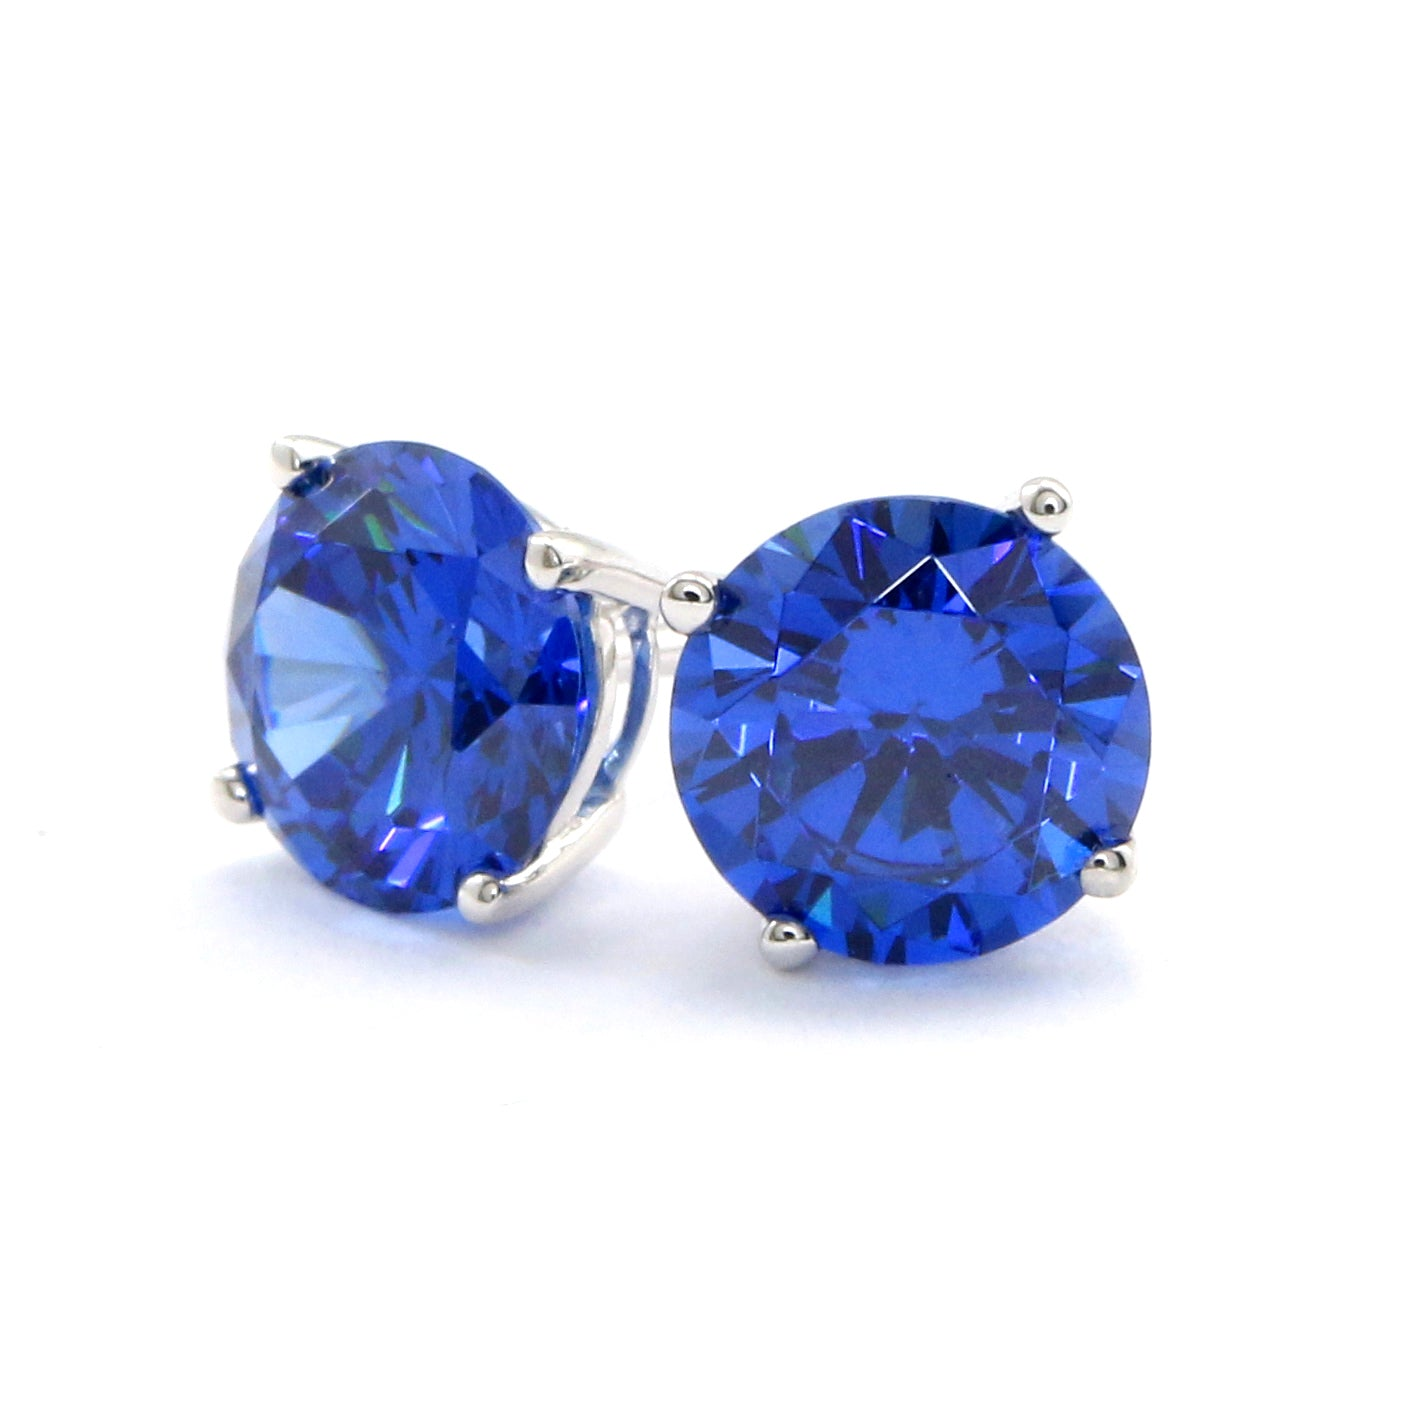 5262ed347 3 Ct Round Blue Earrings Studs Solid 14K 18k White Gold Brilliant Screw  Back Basket -